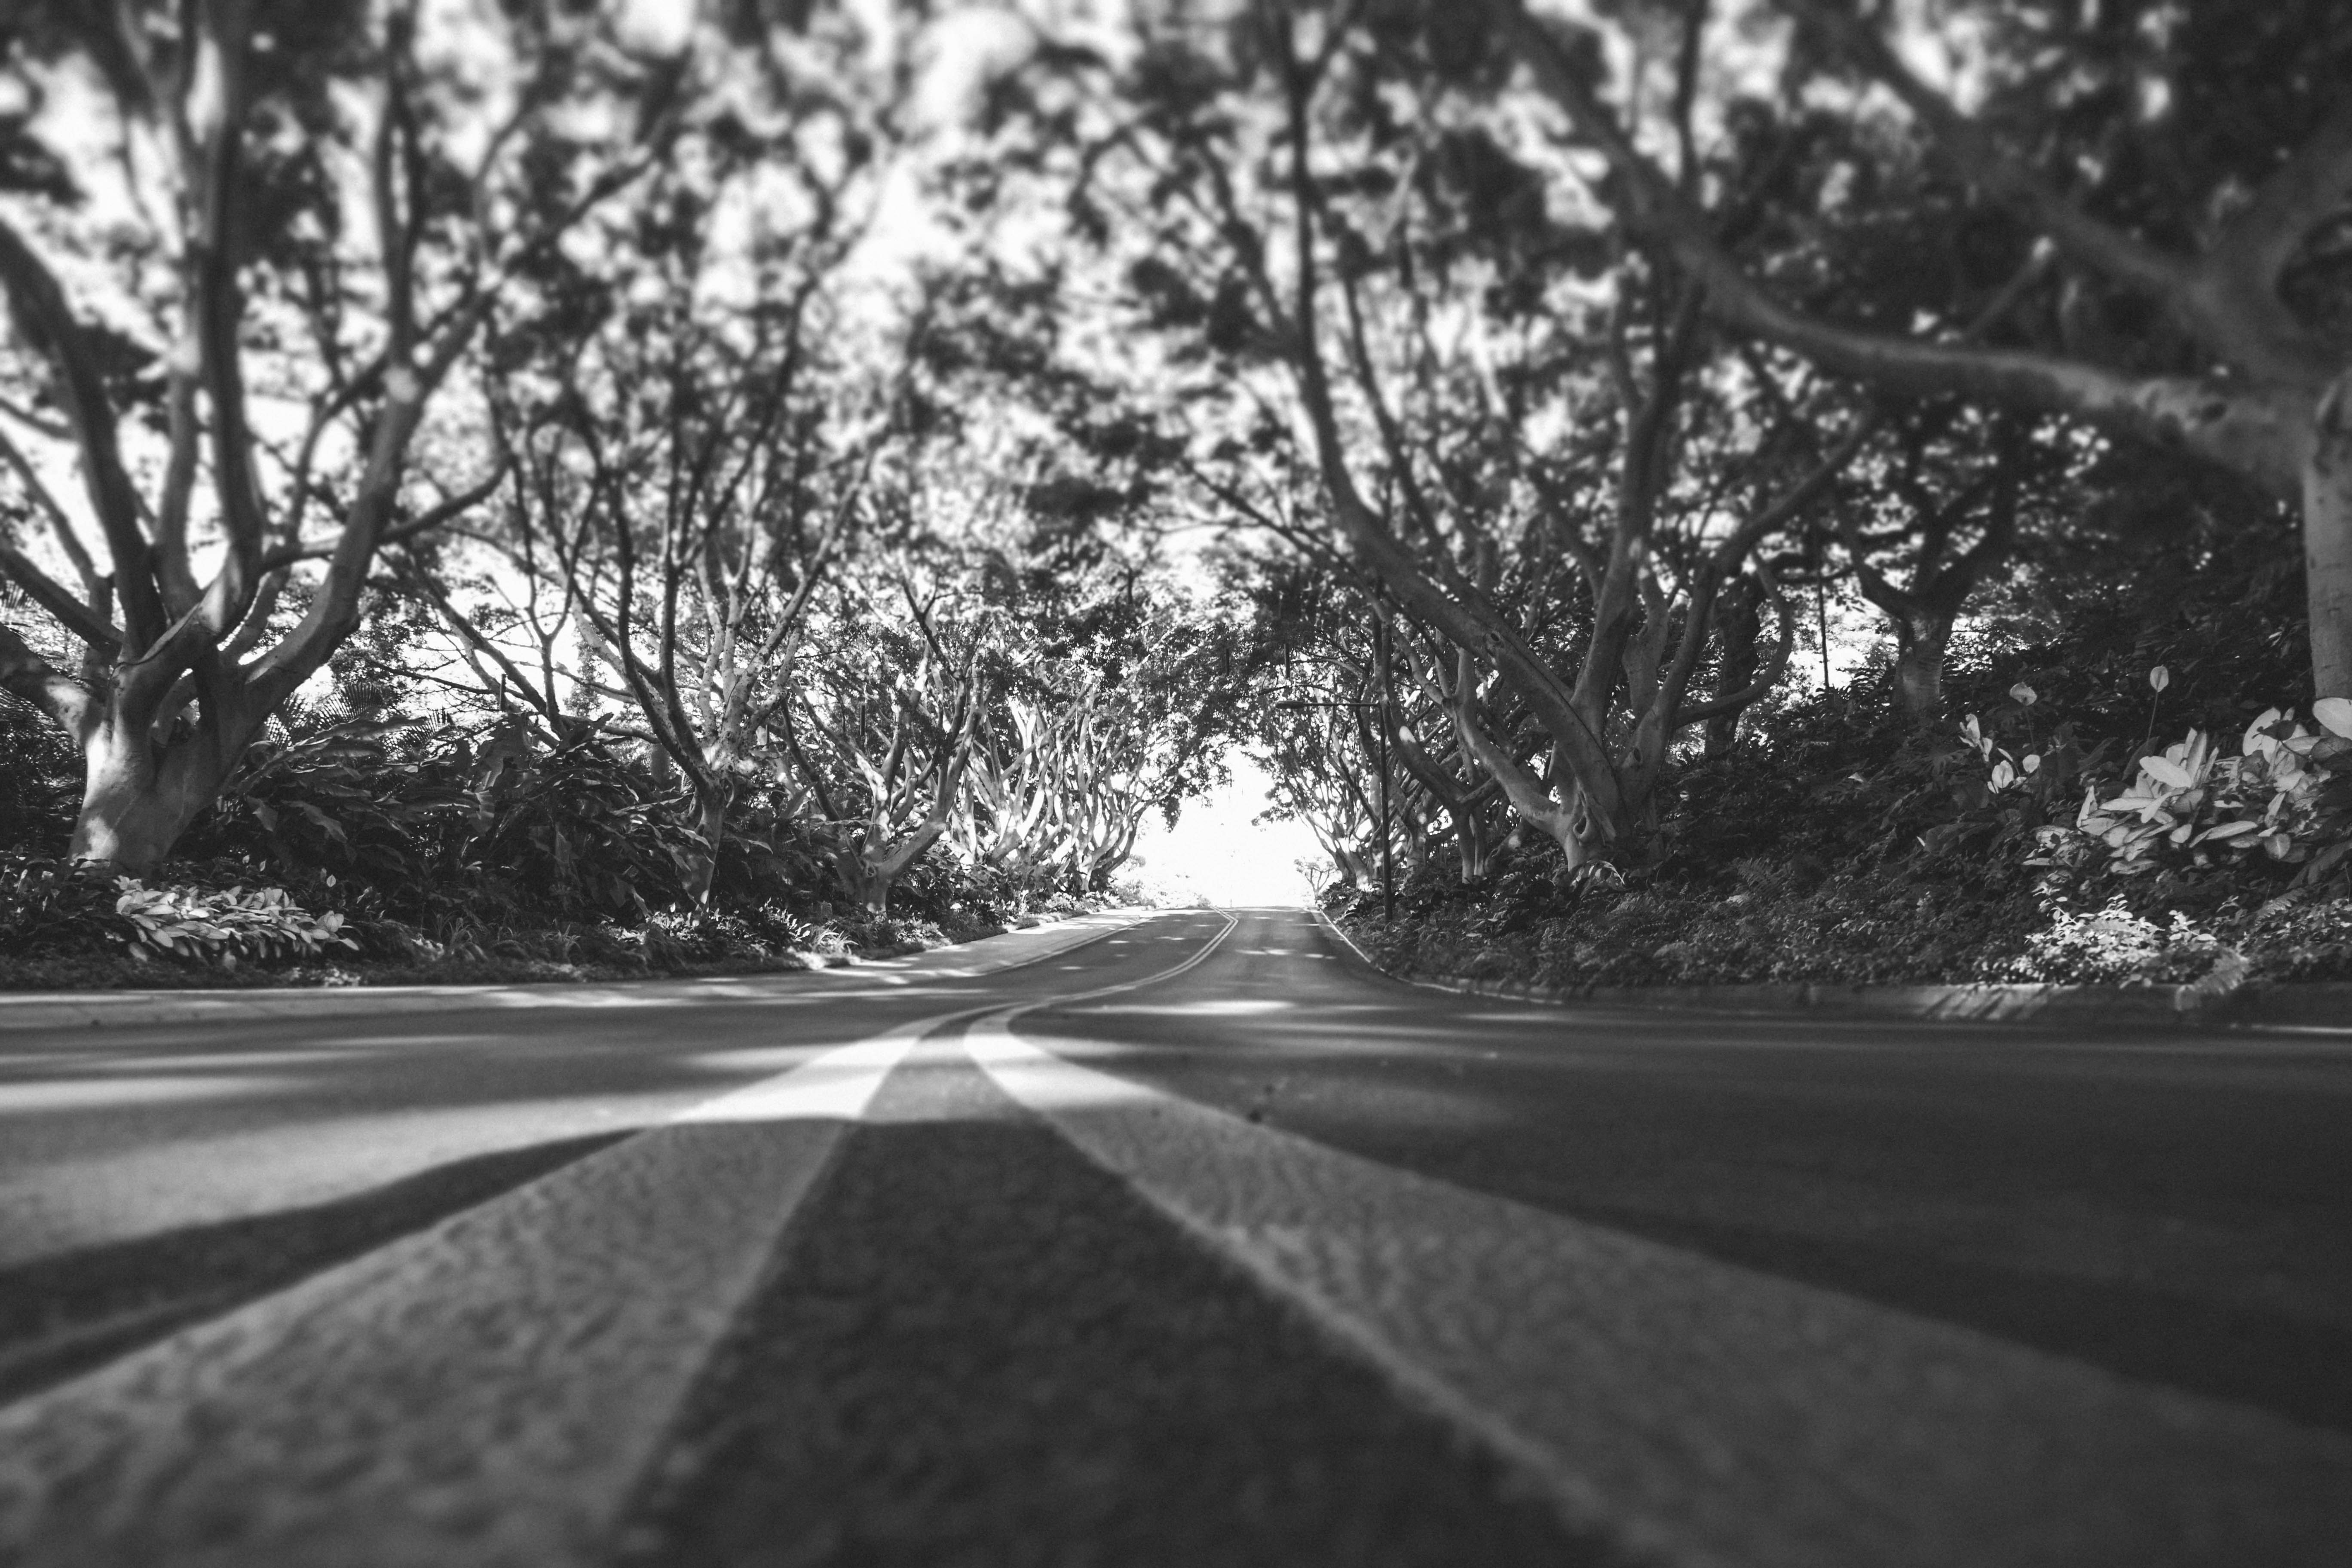 grayscale photography of concrete road